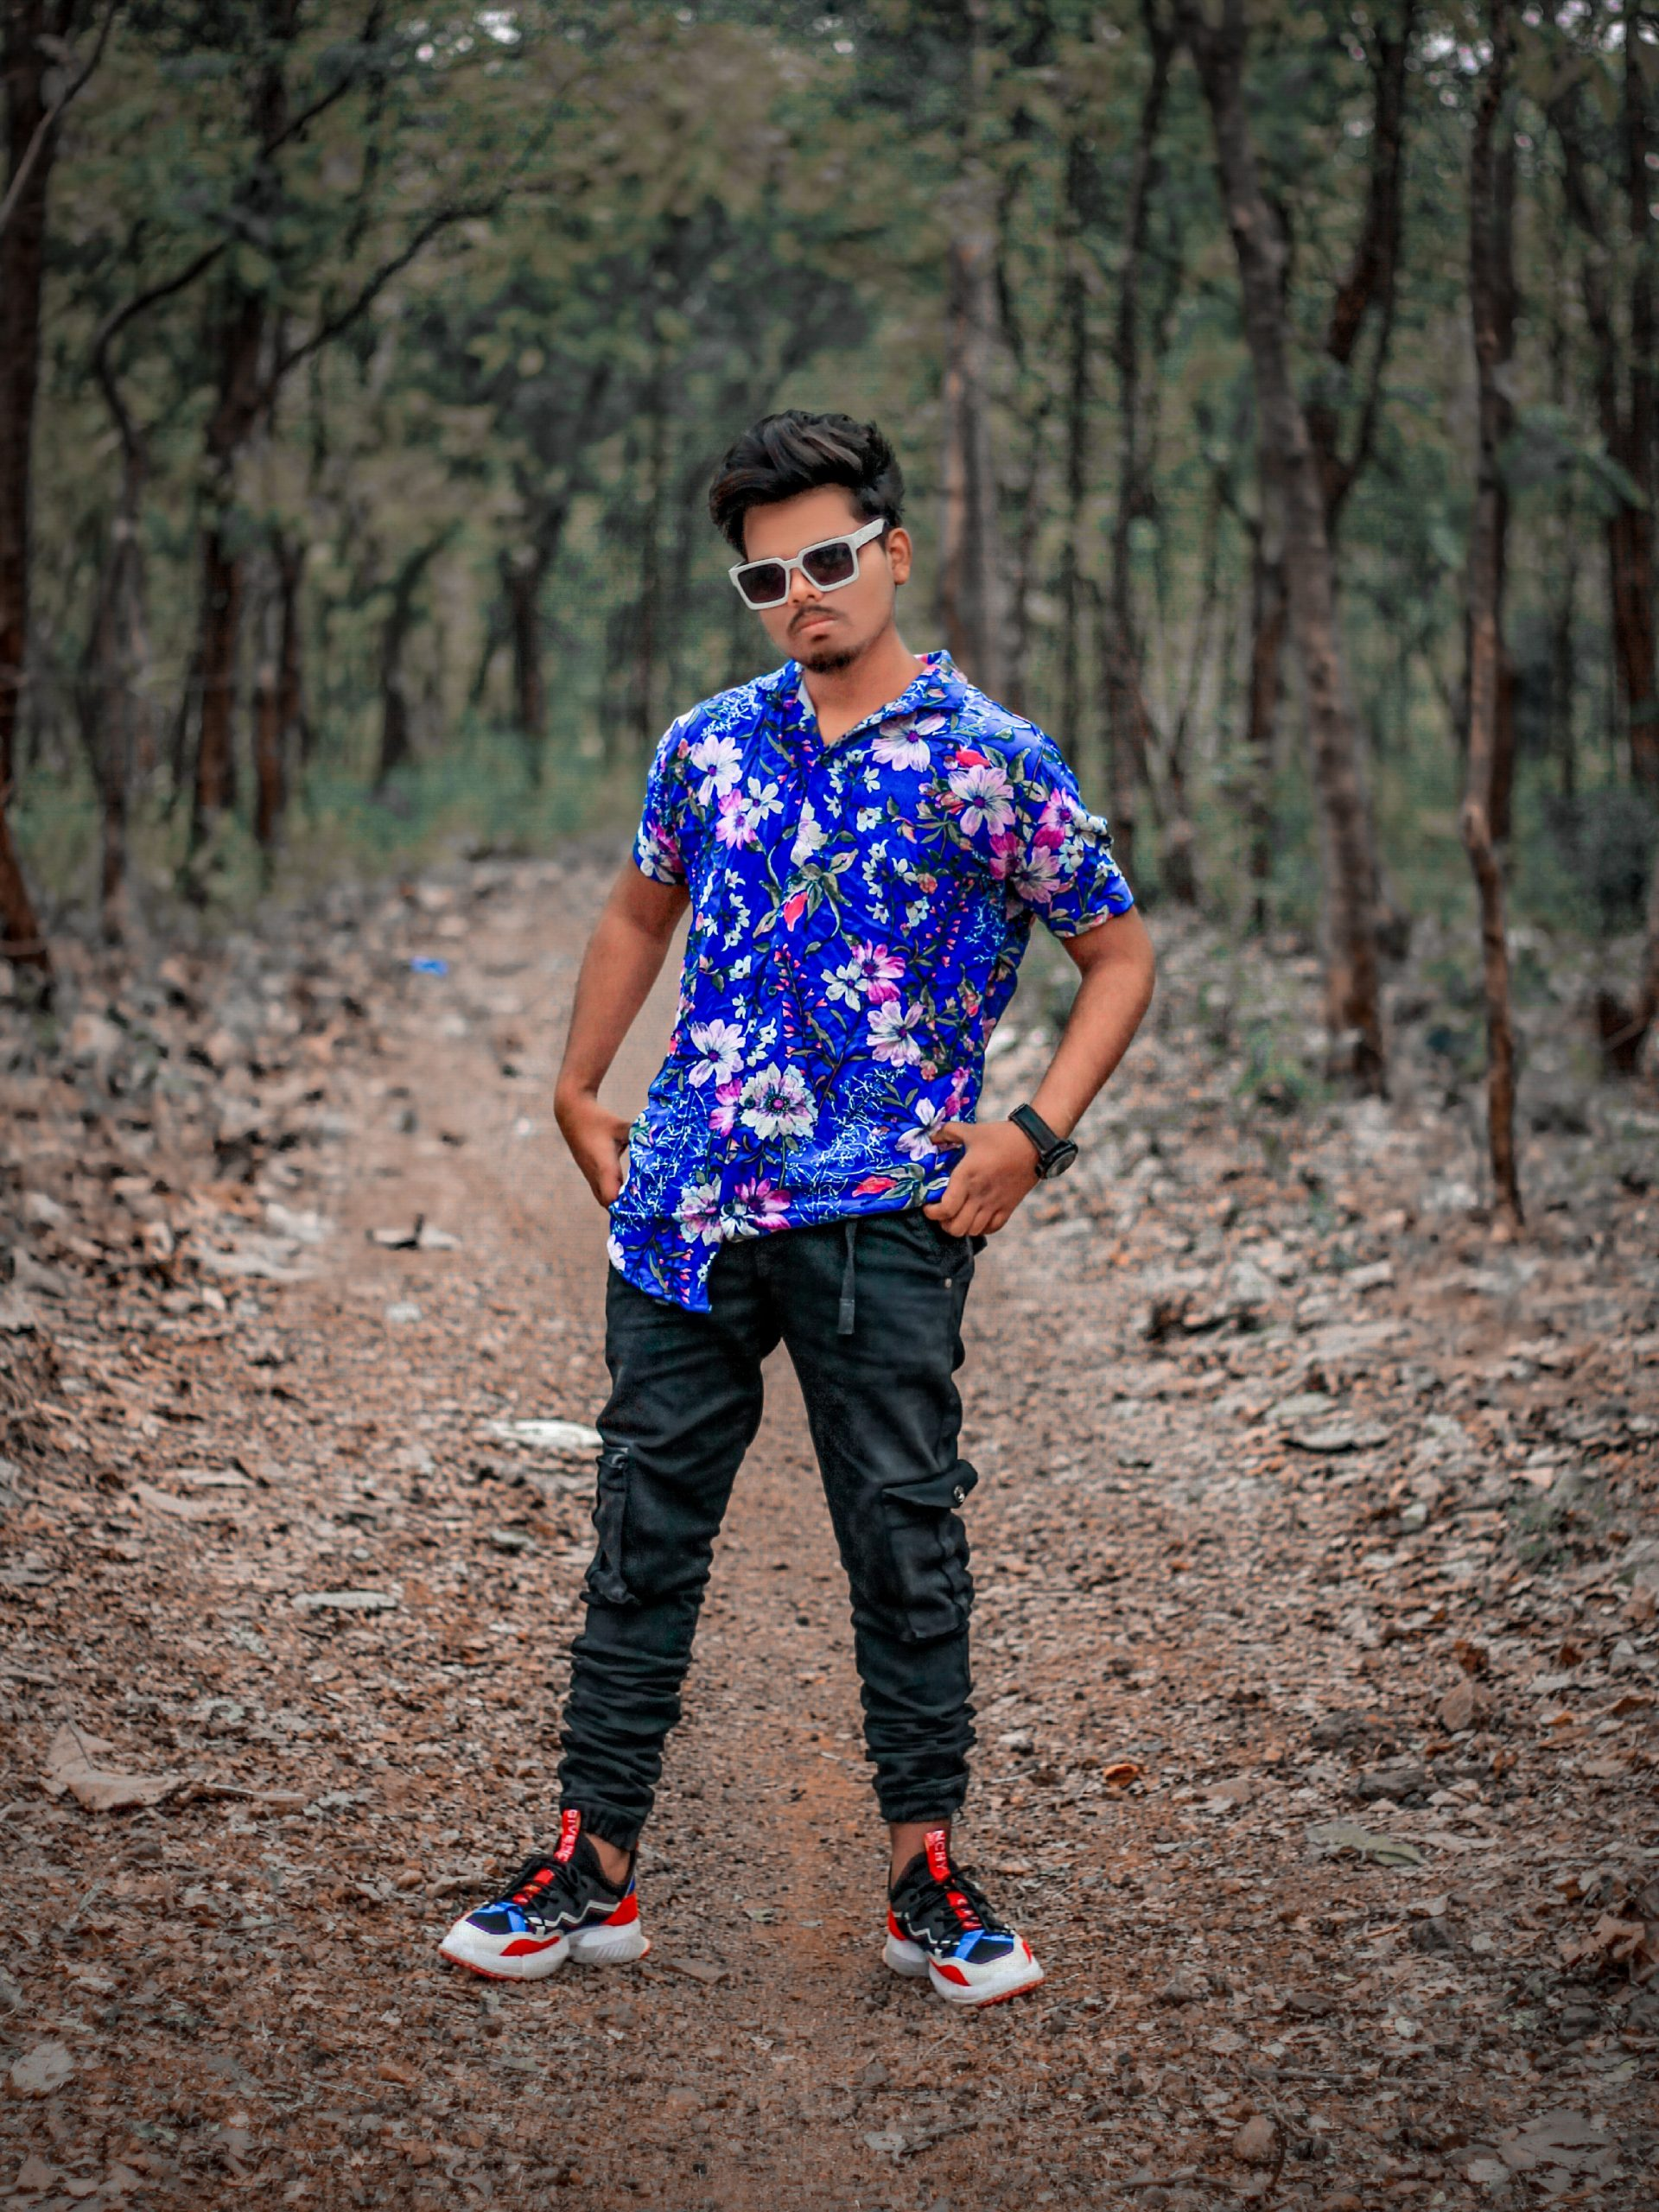 Boy posing in forest